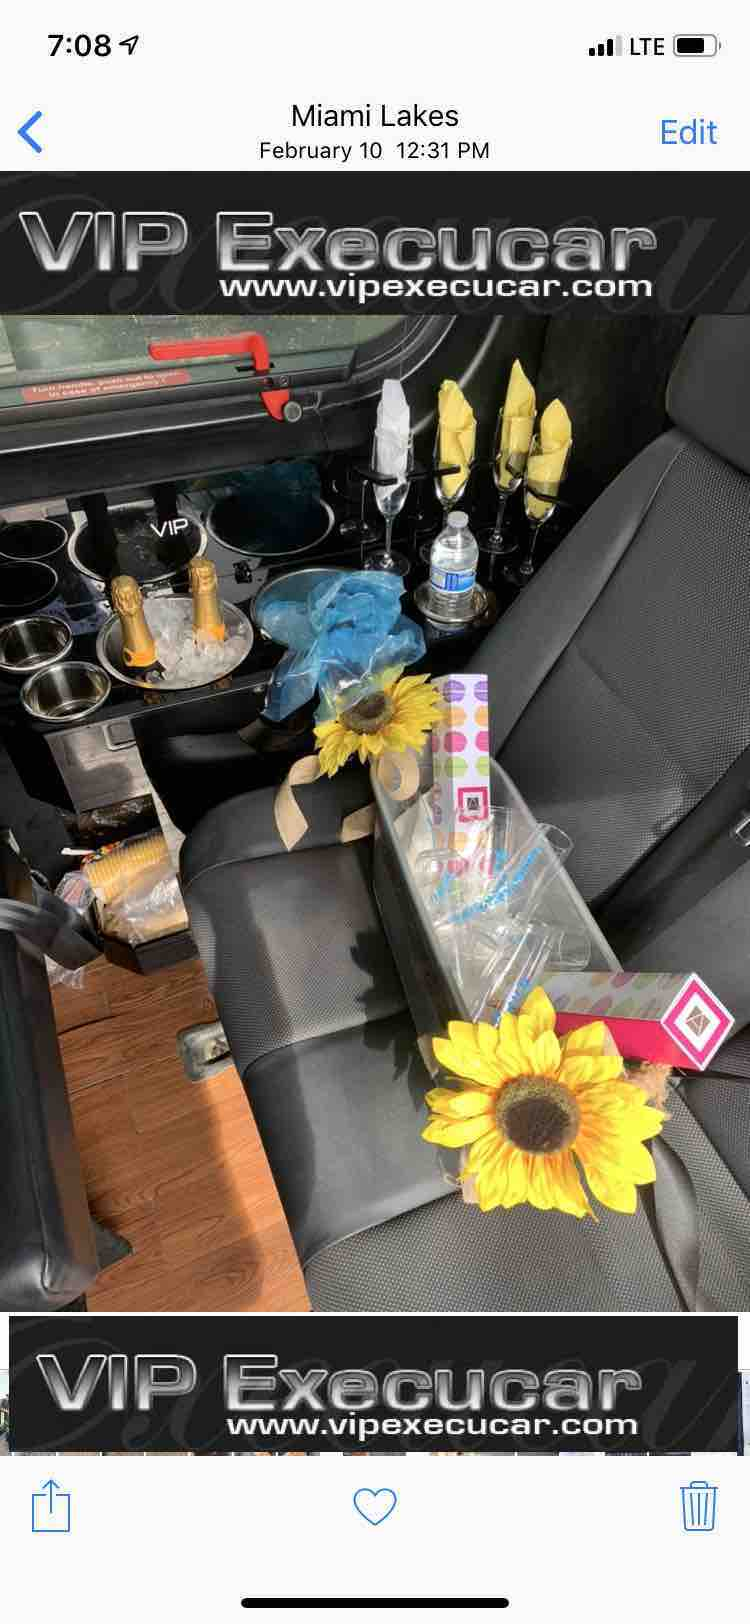 Airport Limousine Service in South Florida